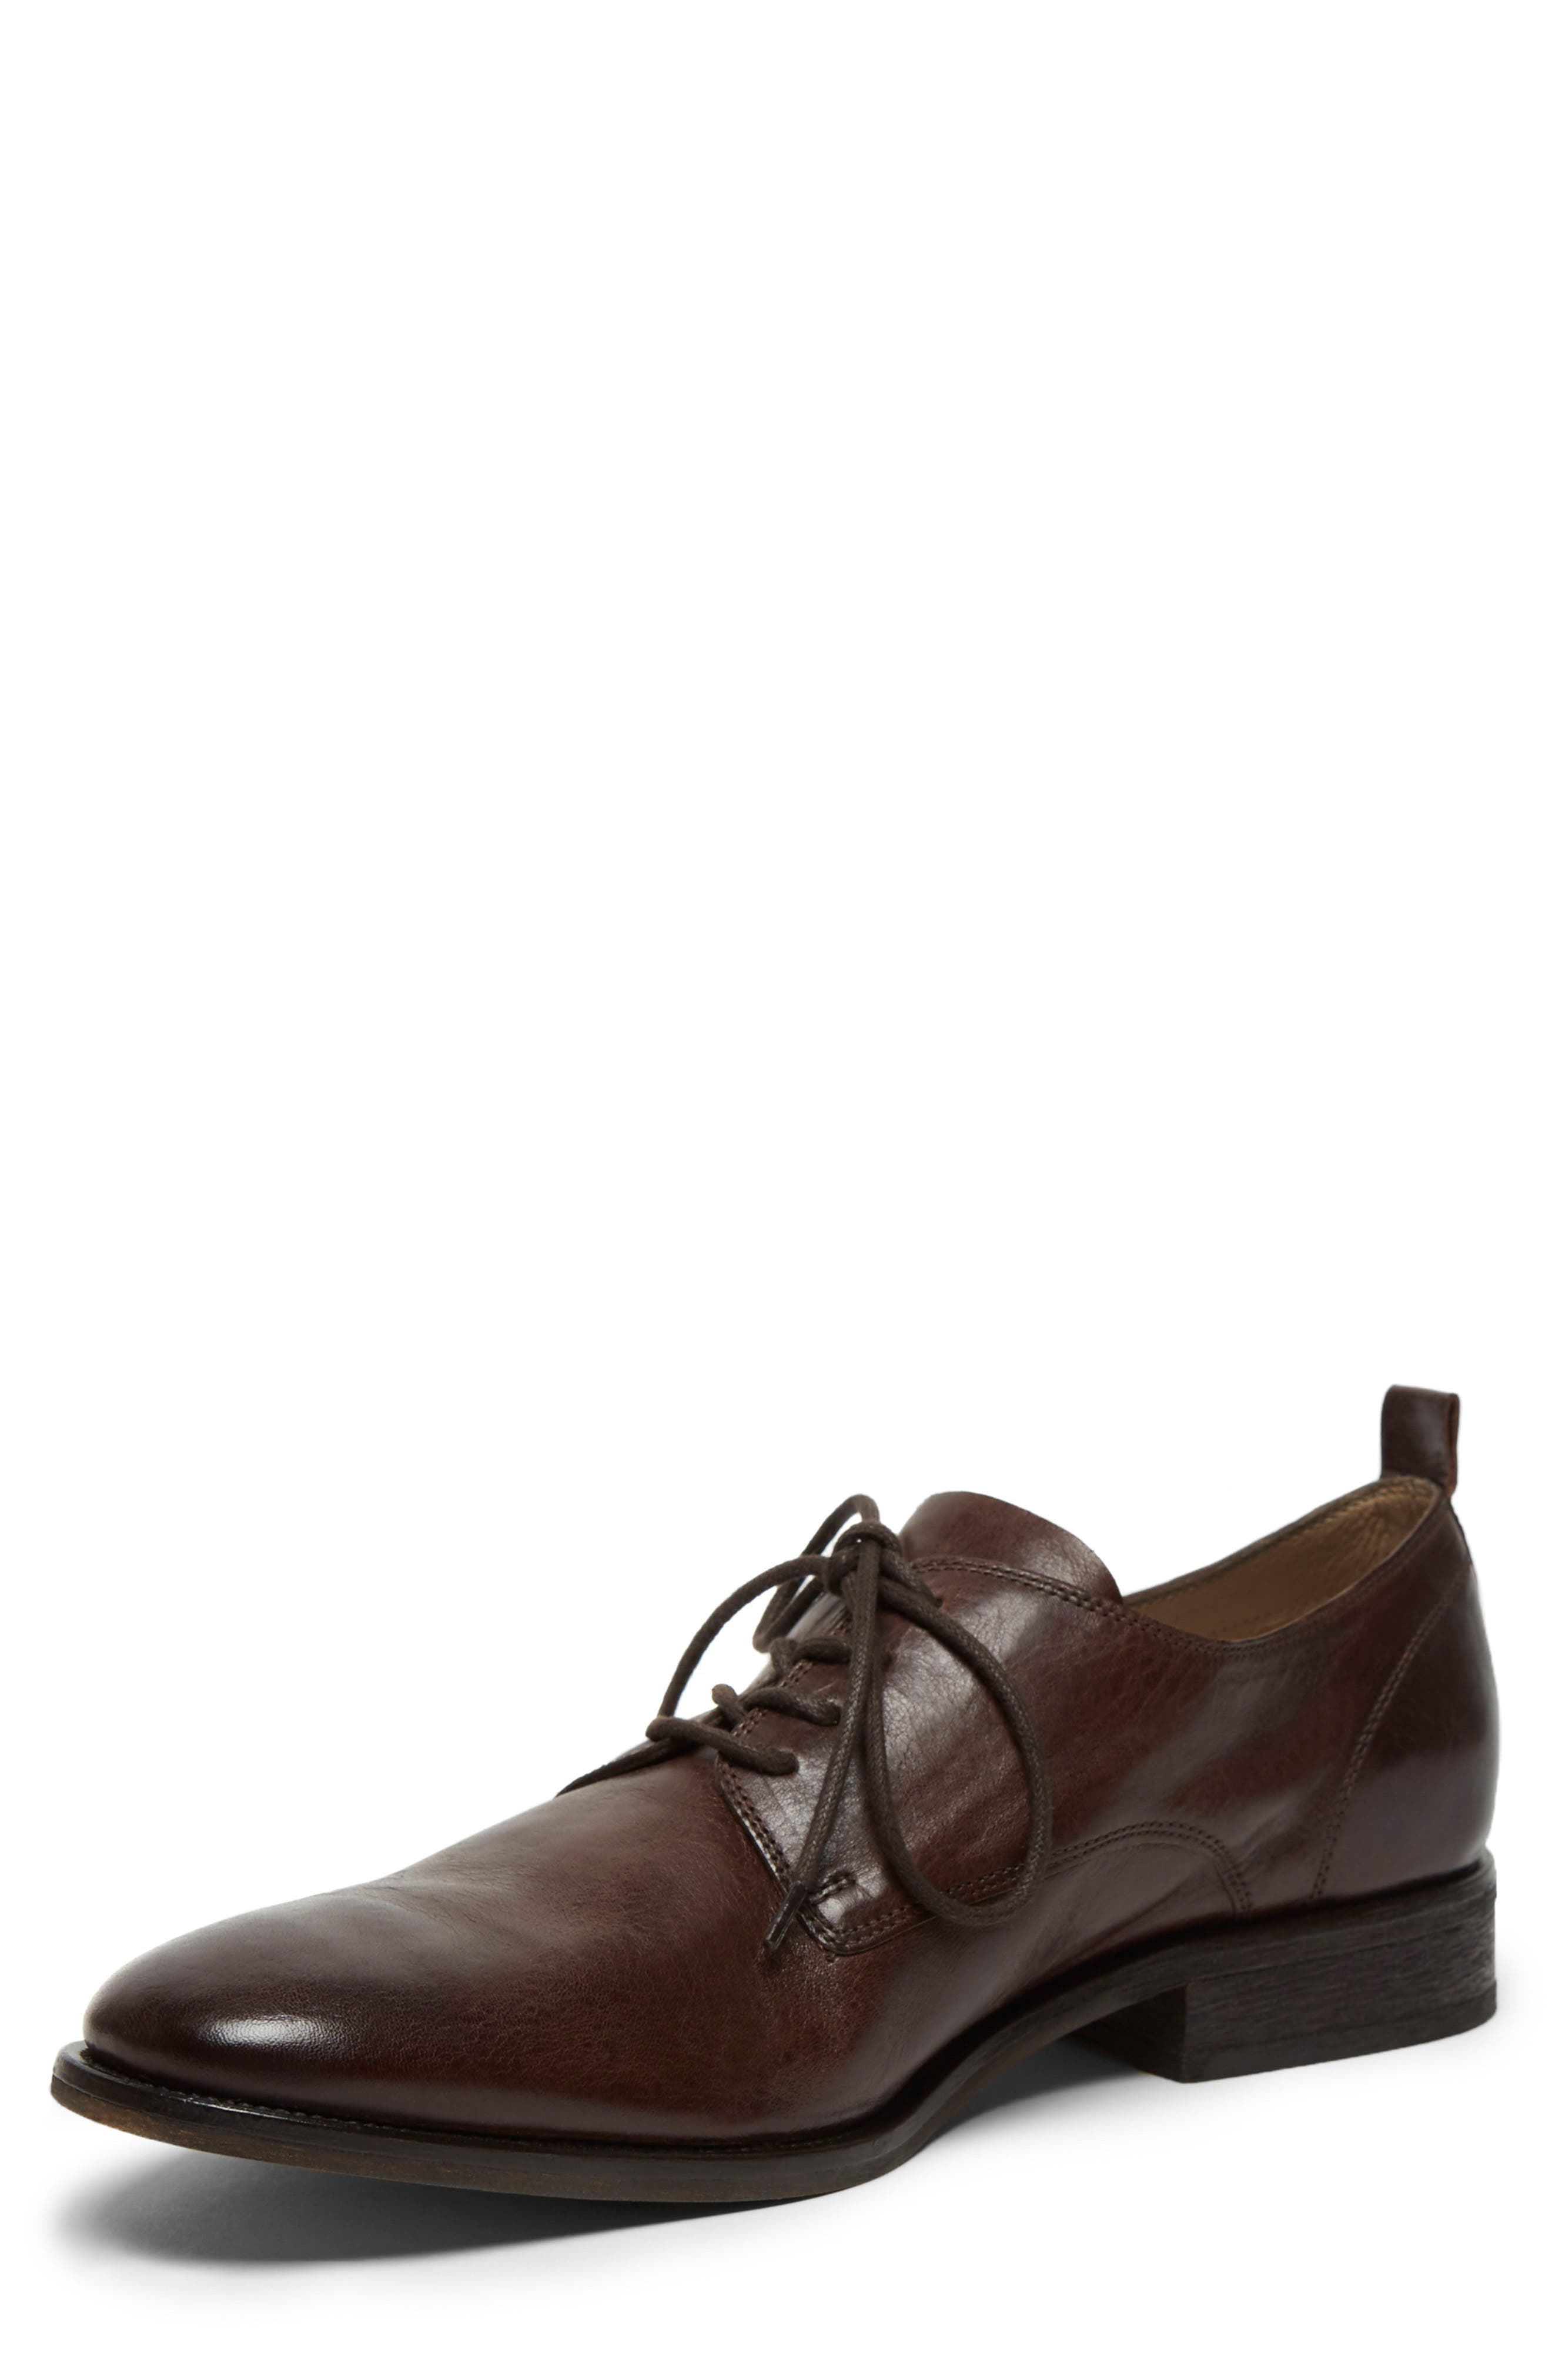 Indio Plain Toe Derby,                             Alternate thumbnail 4, color,                             BROWN LEATHER